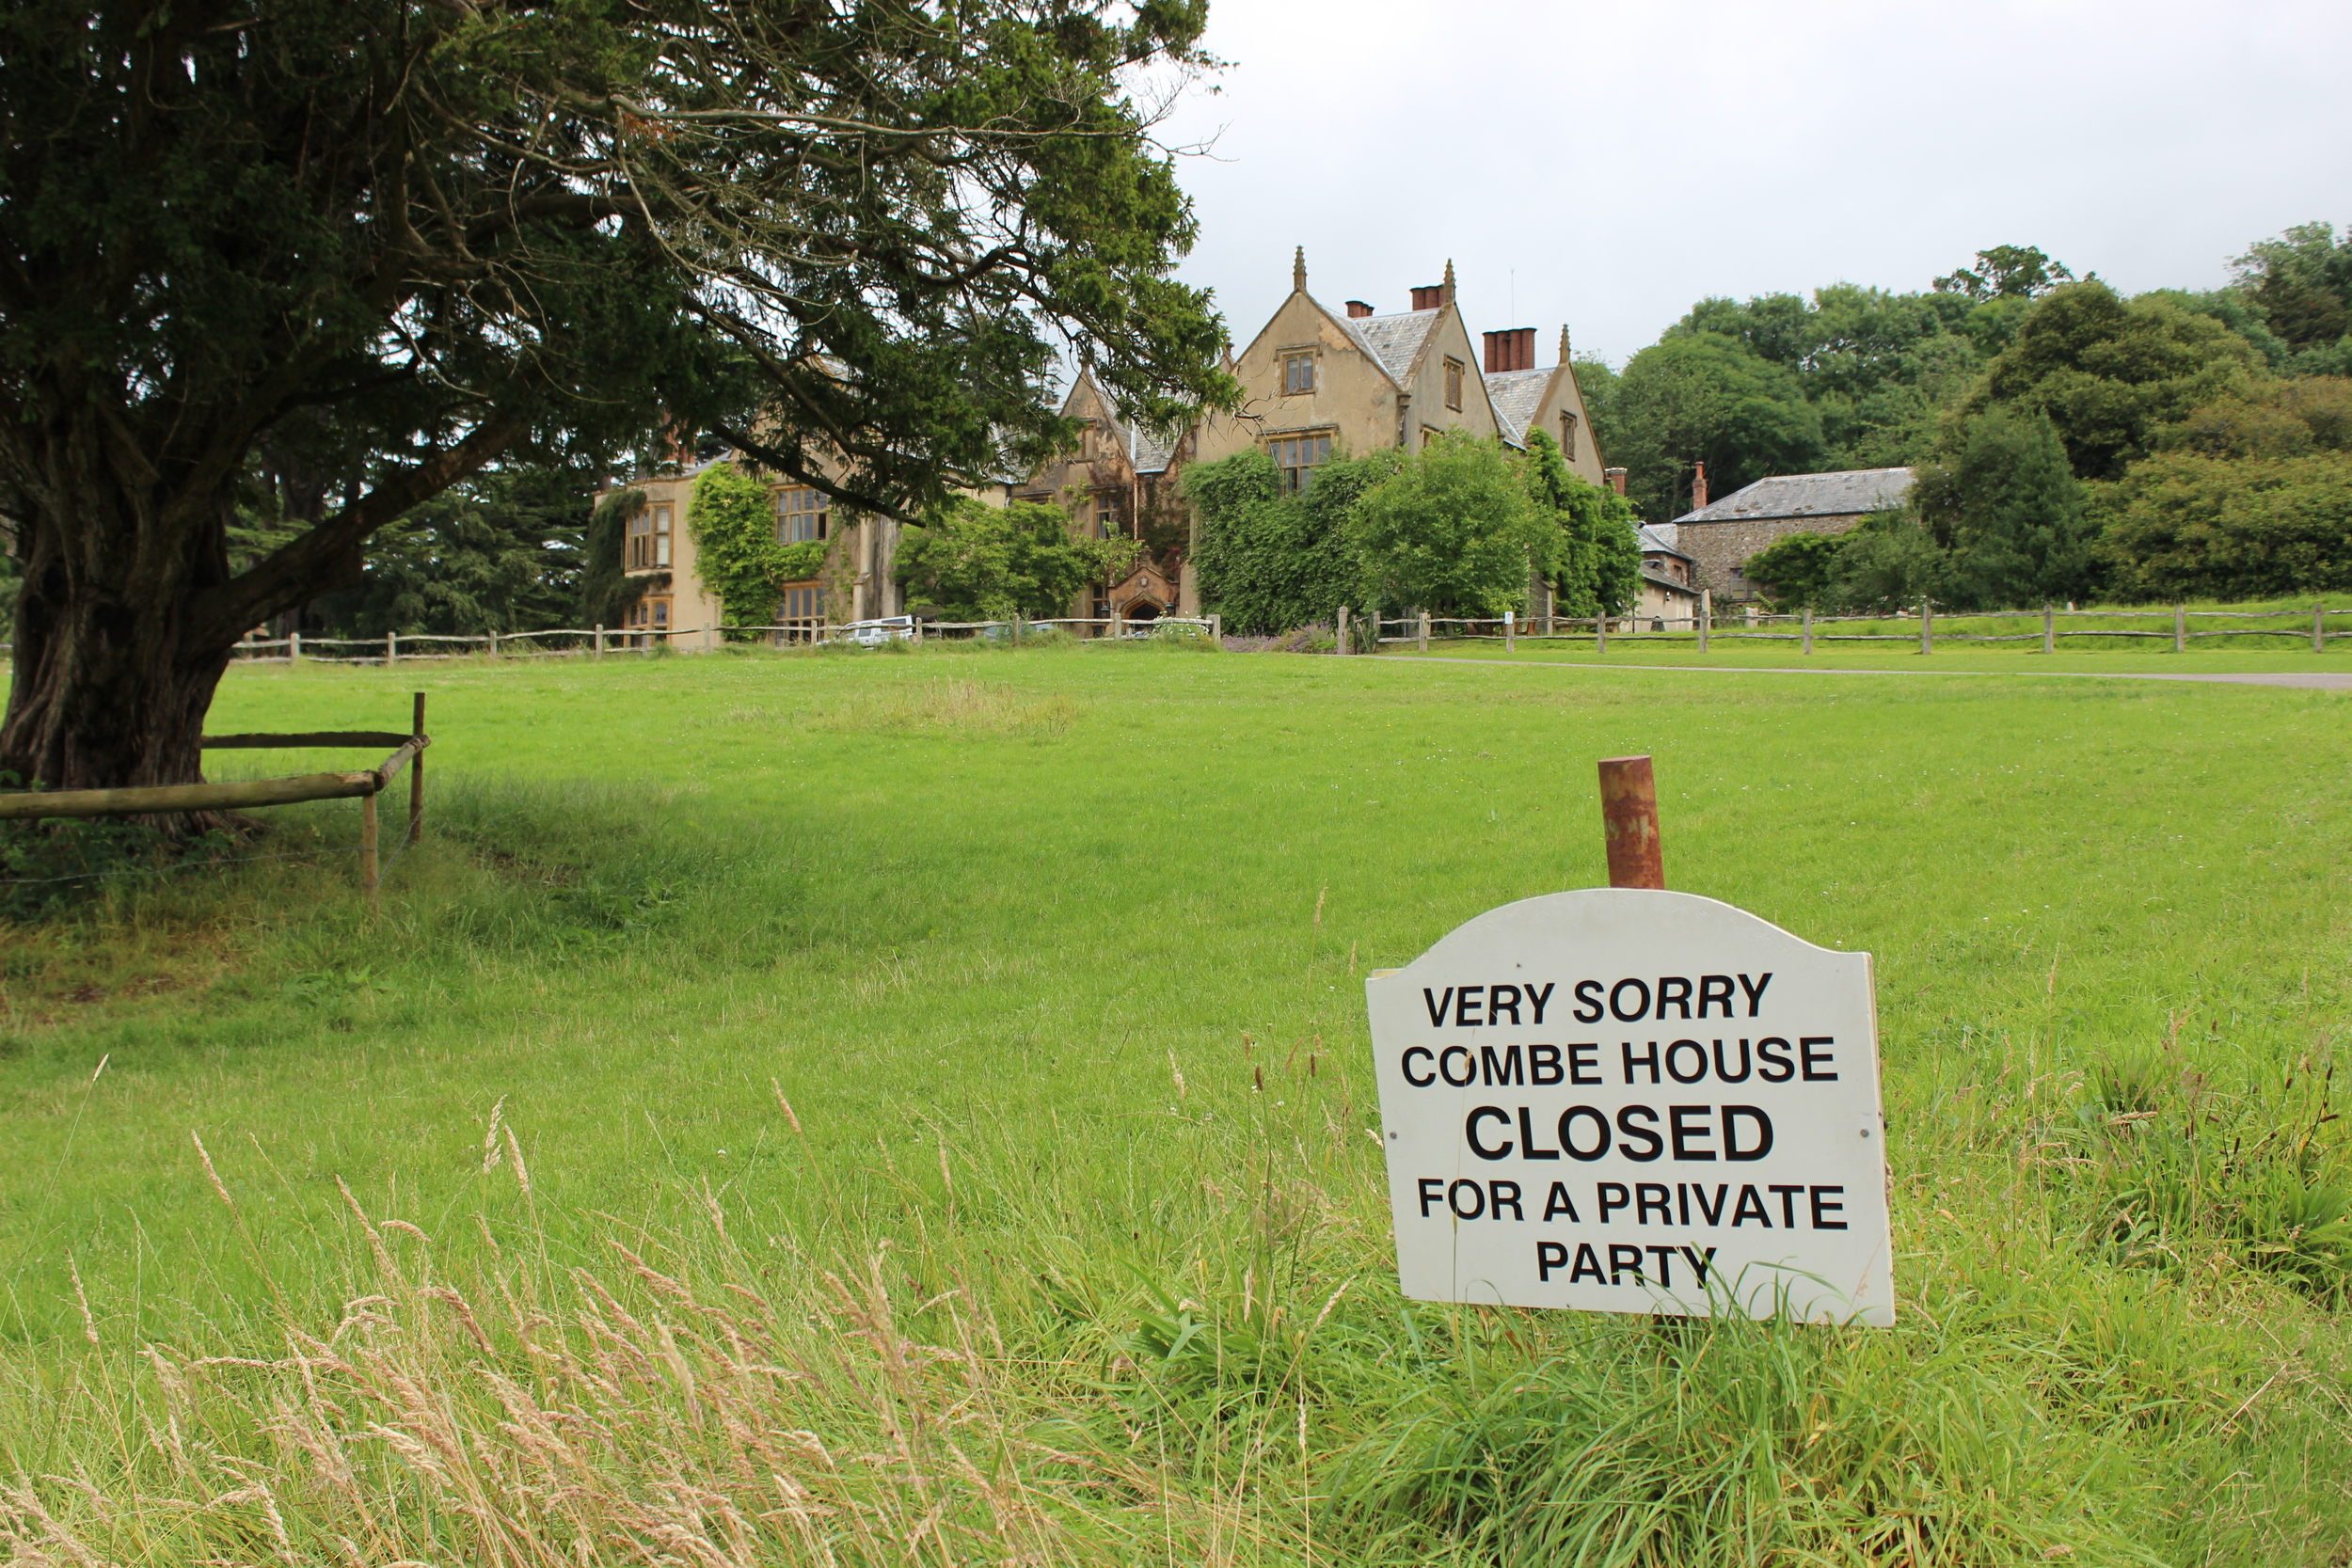 Combe House was open only for guests of the wedding.